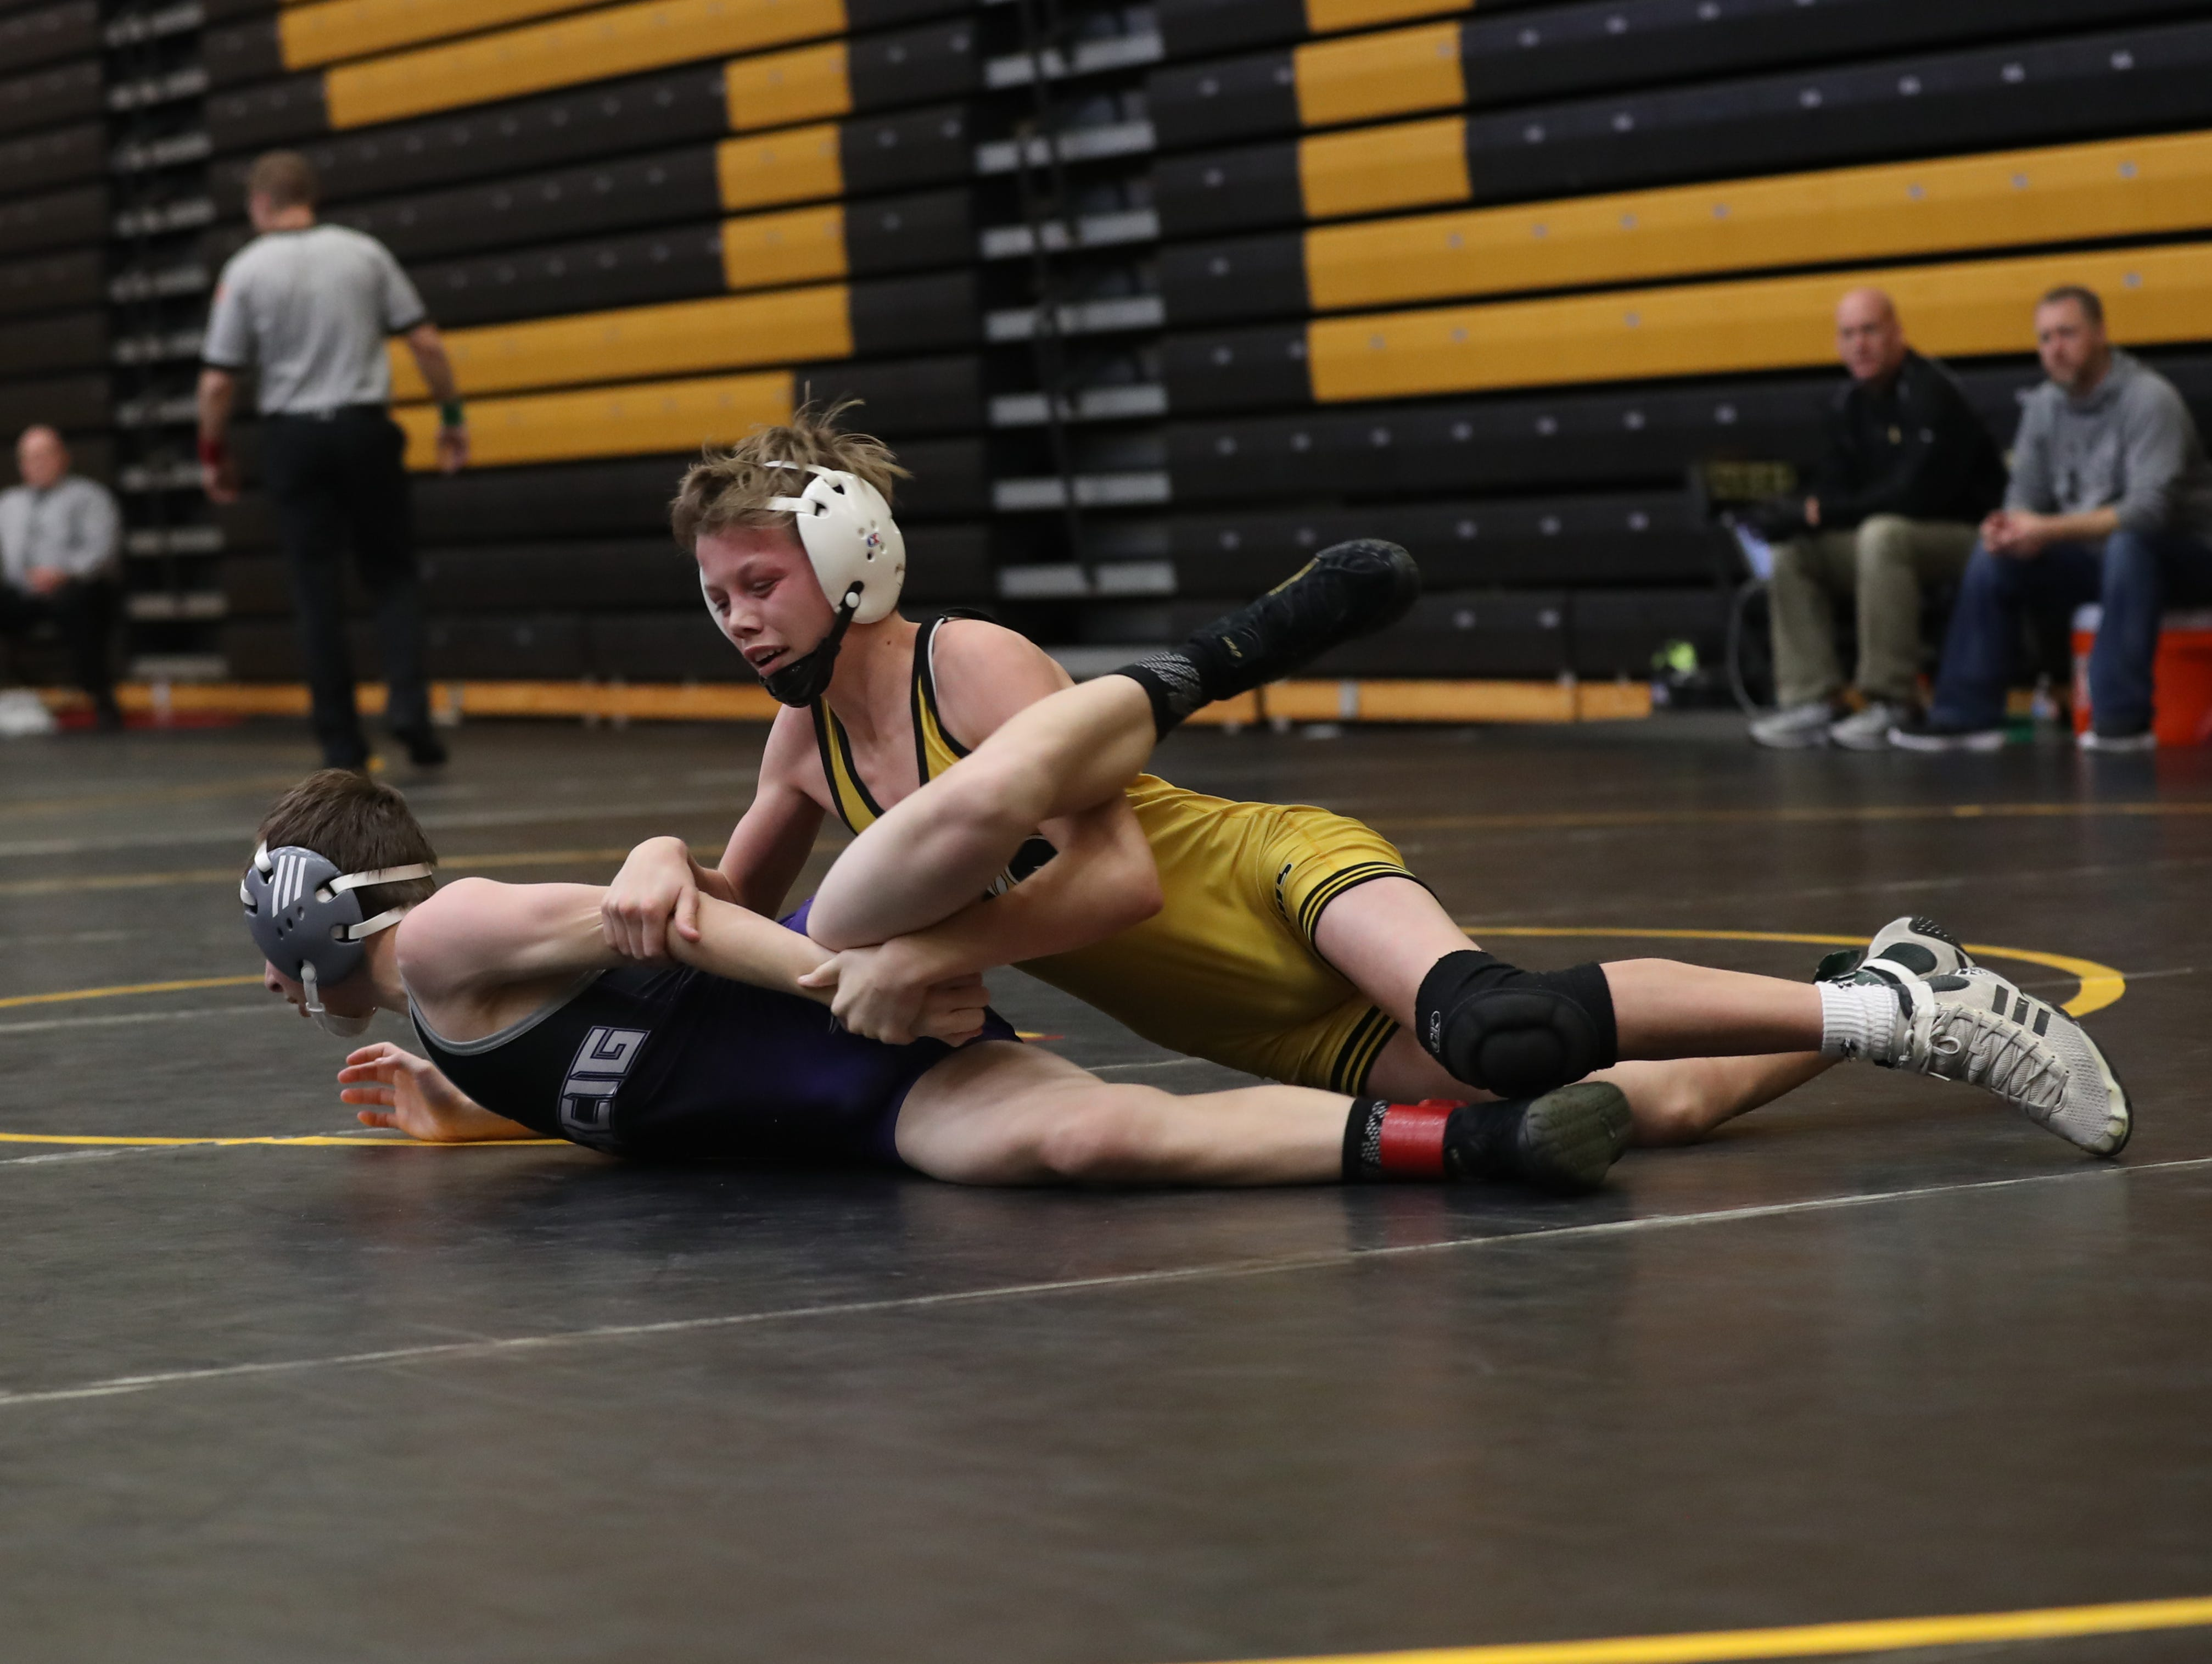 Cooper Hanson wrestles at the Red Owens Holiday Classic at Southeast Polk High School on Dec. 15, 2018.